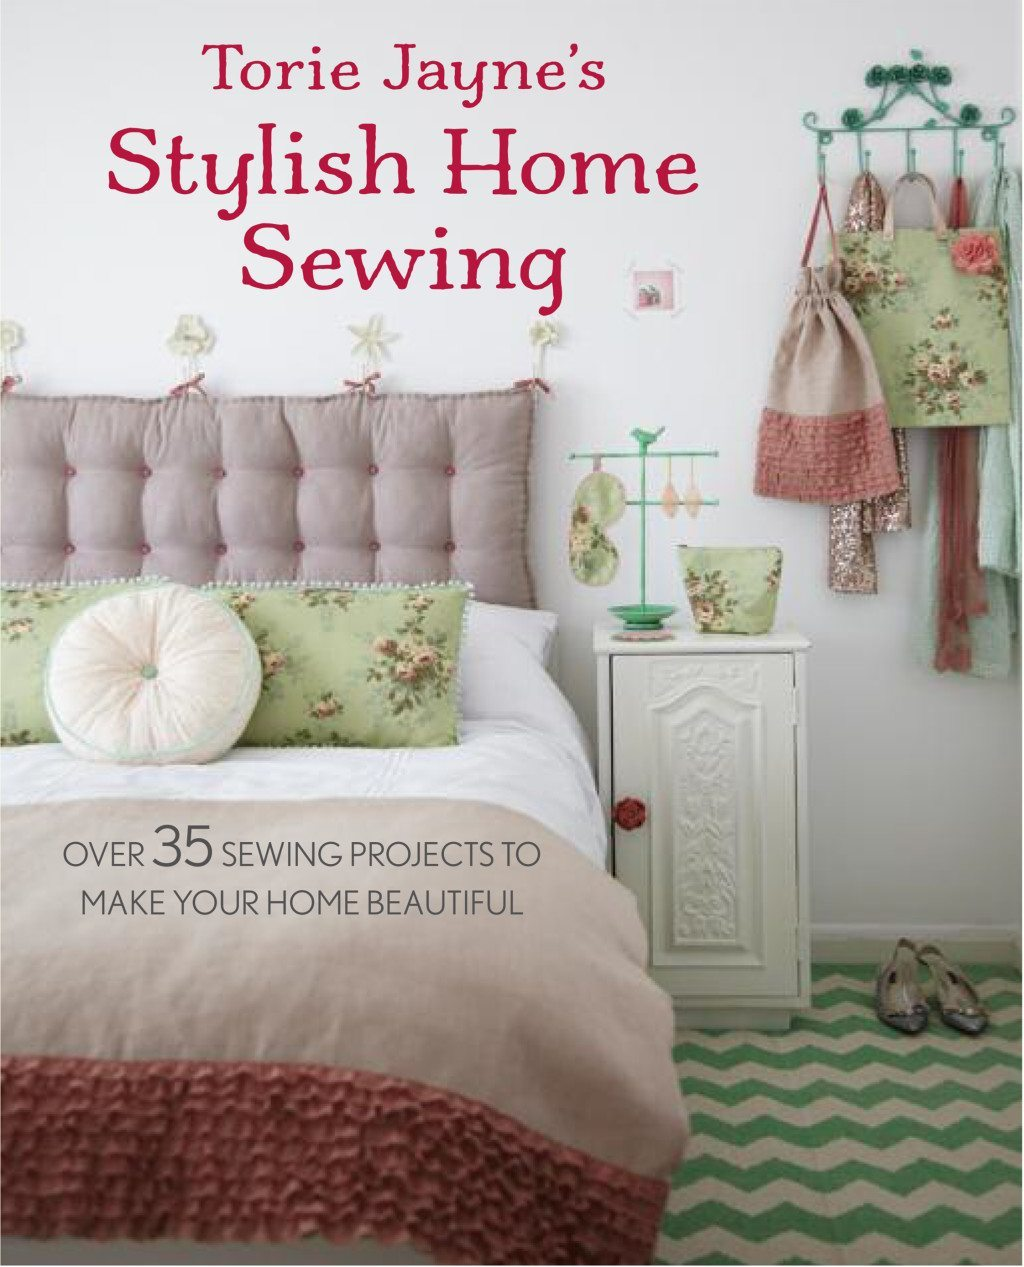 Stylish Home Sewing: 35 Perfect Ways to Make Your Home Beautiful by Torie Jayne